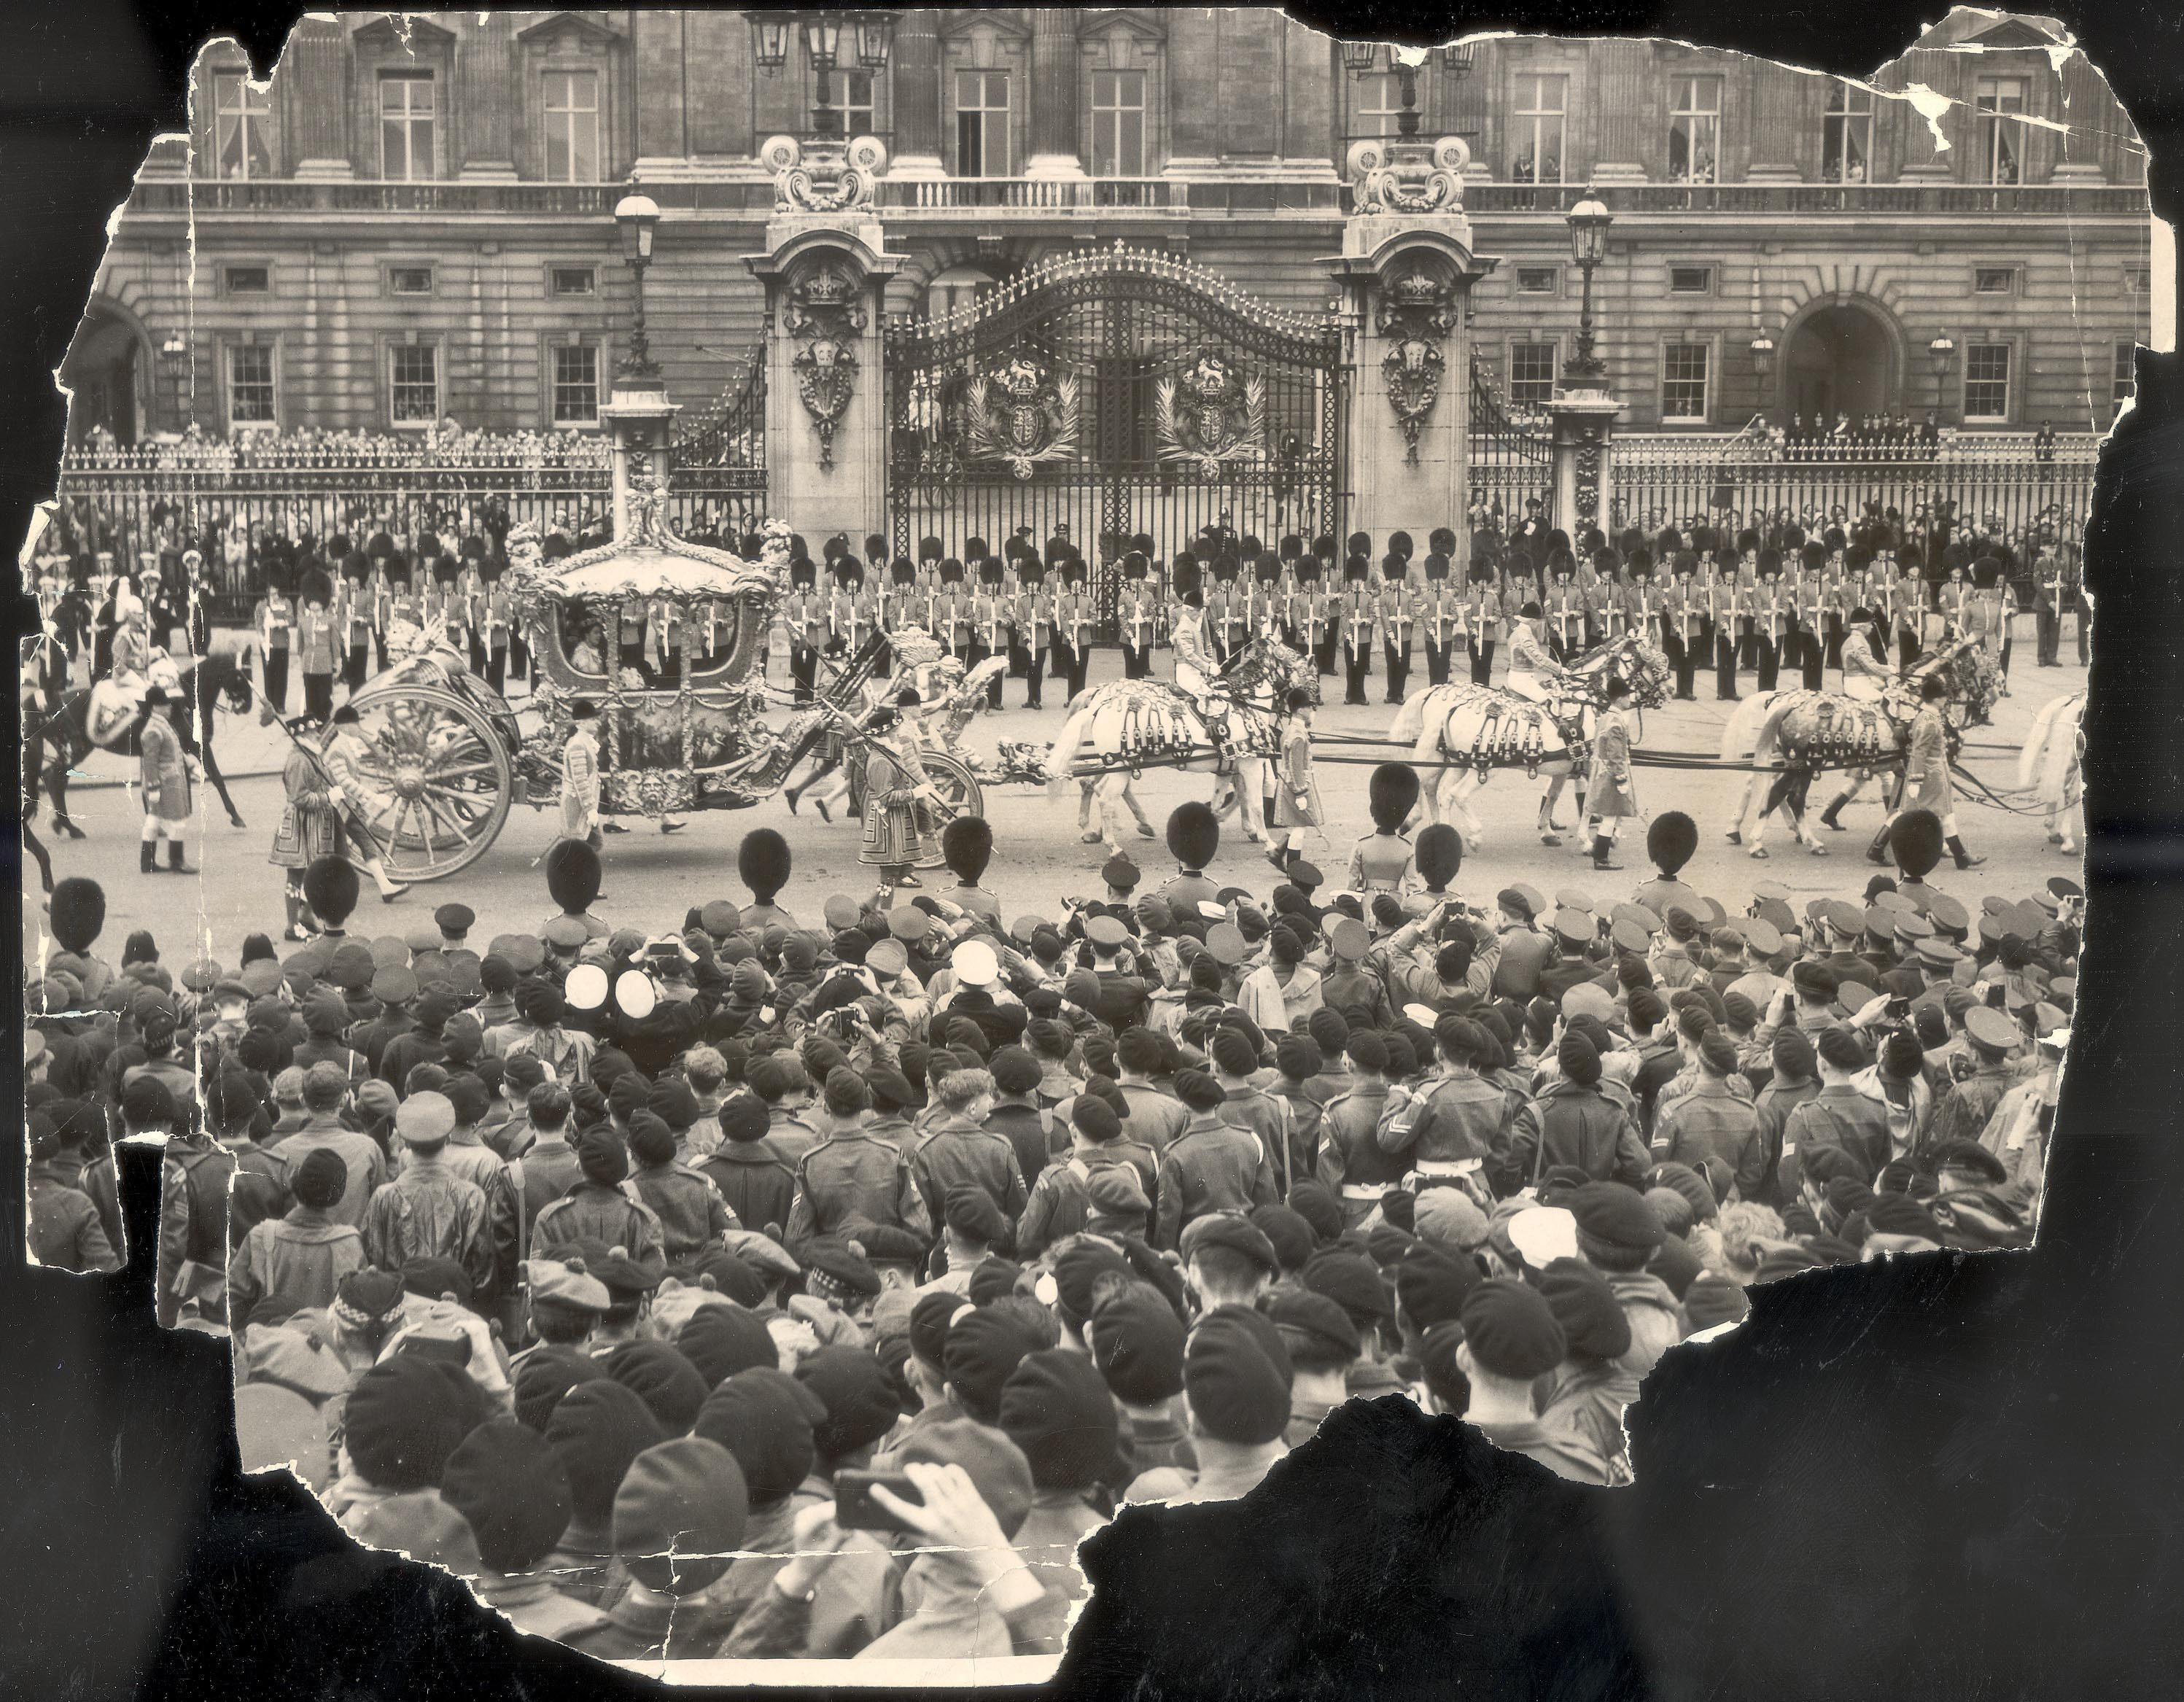 The Queen's Procession